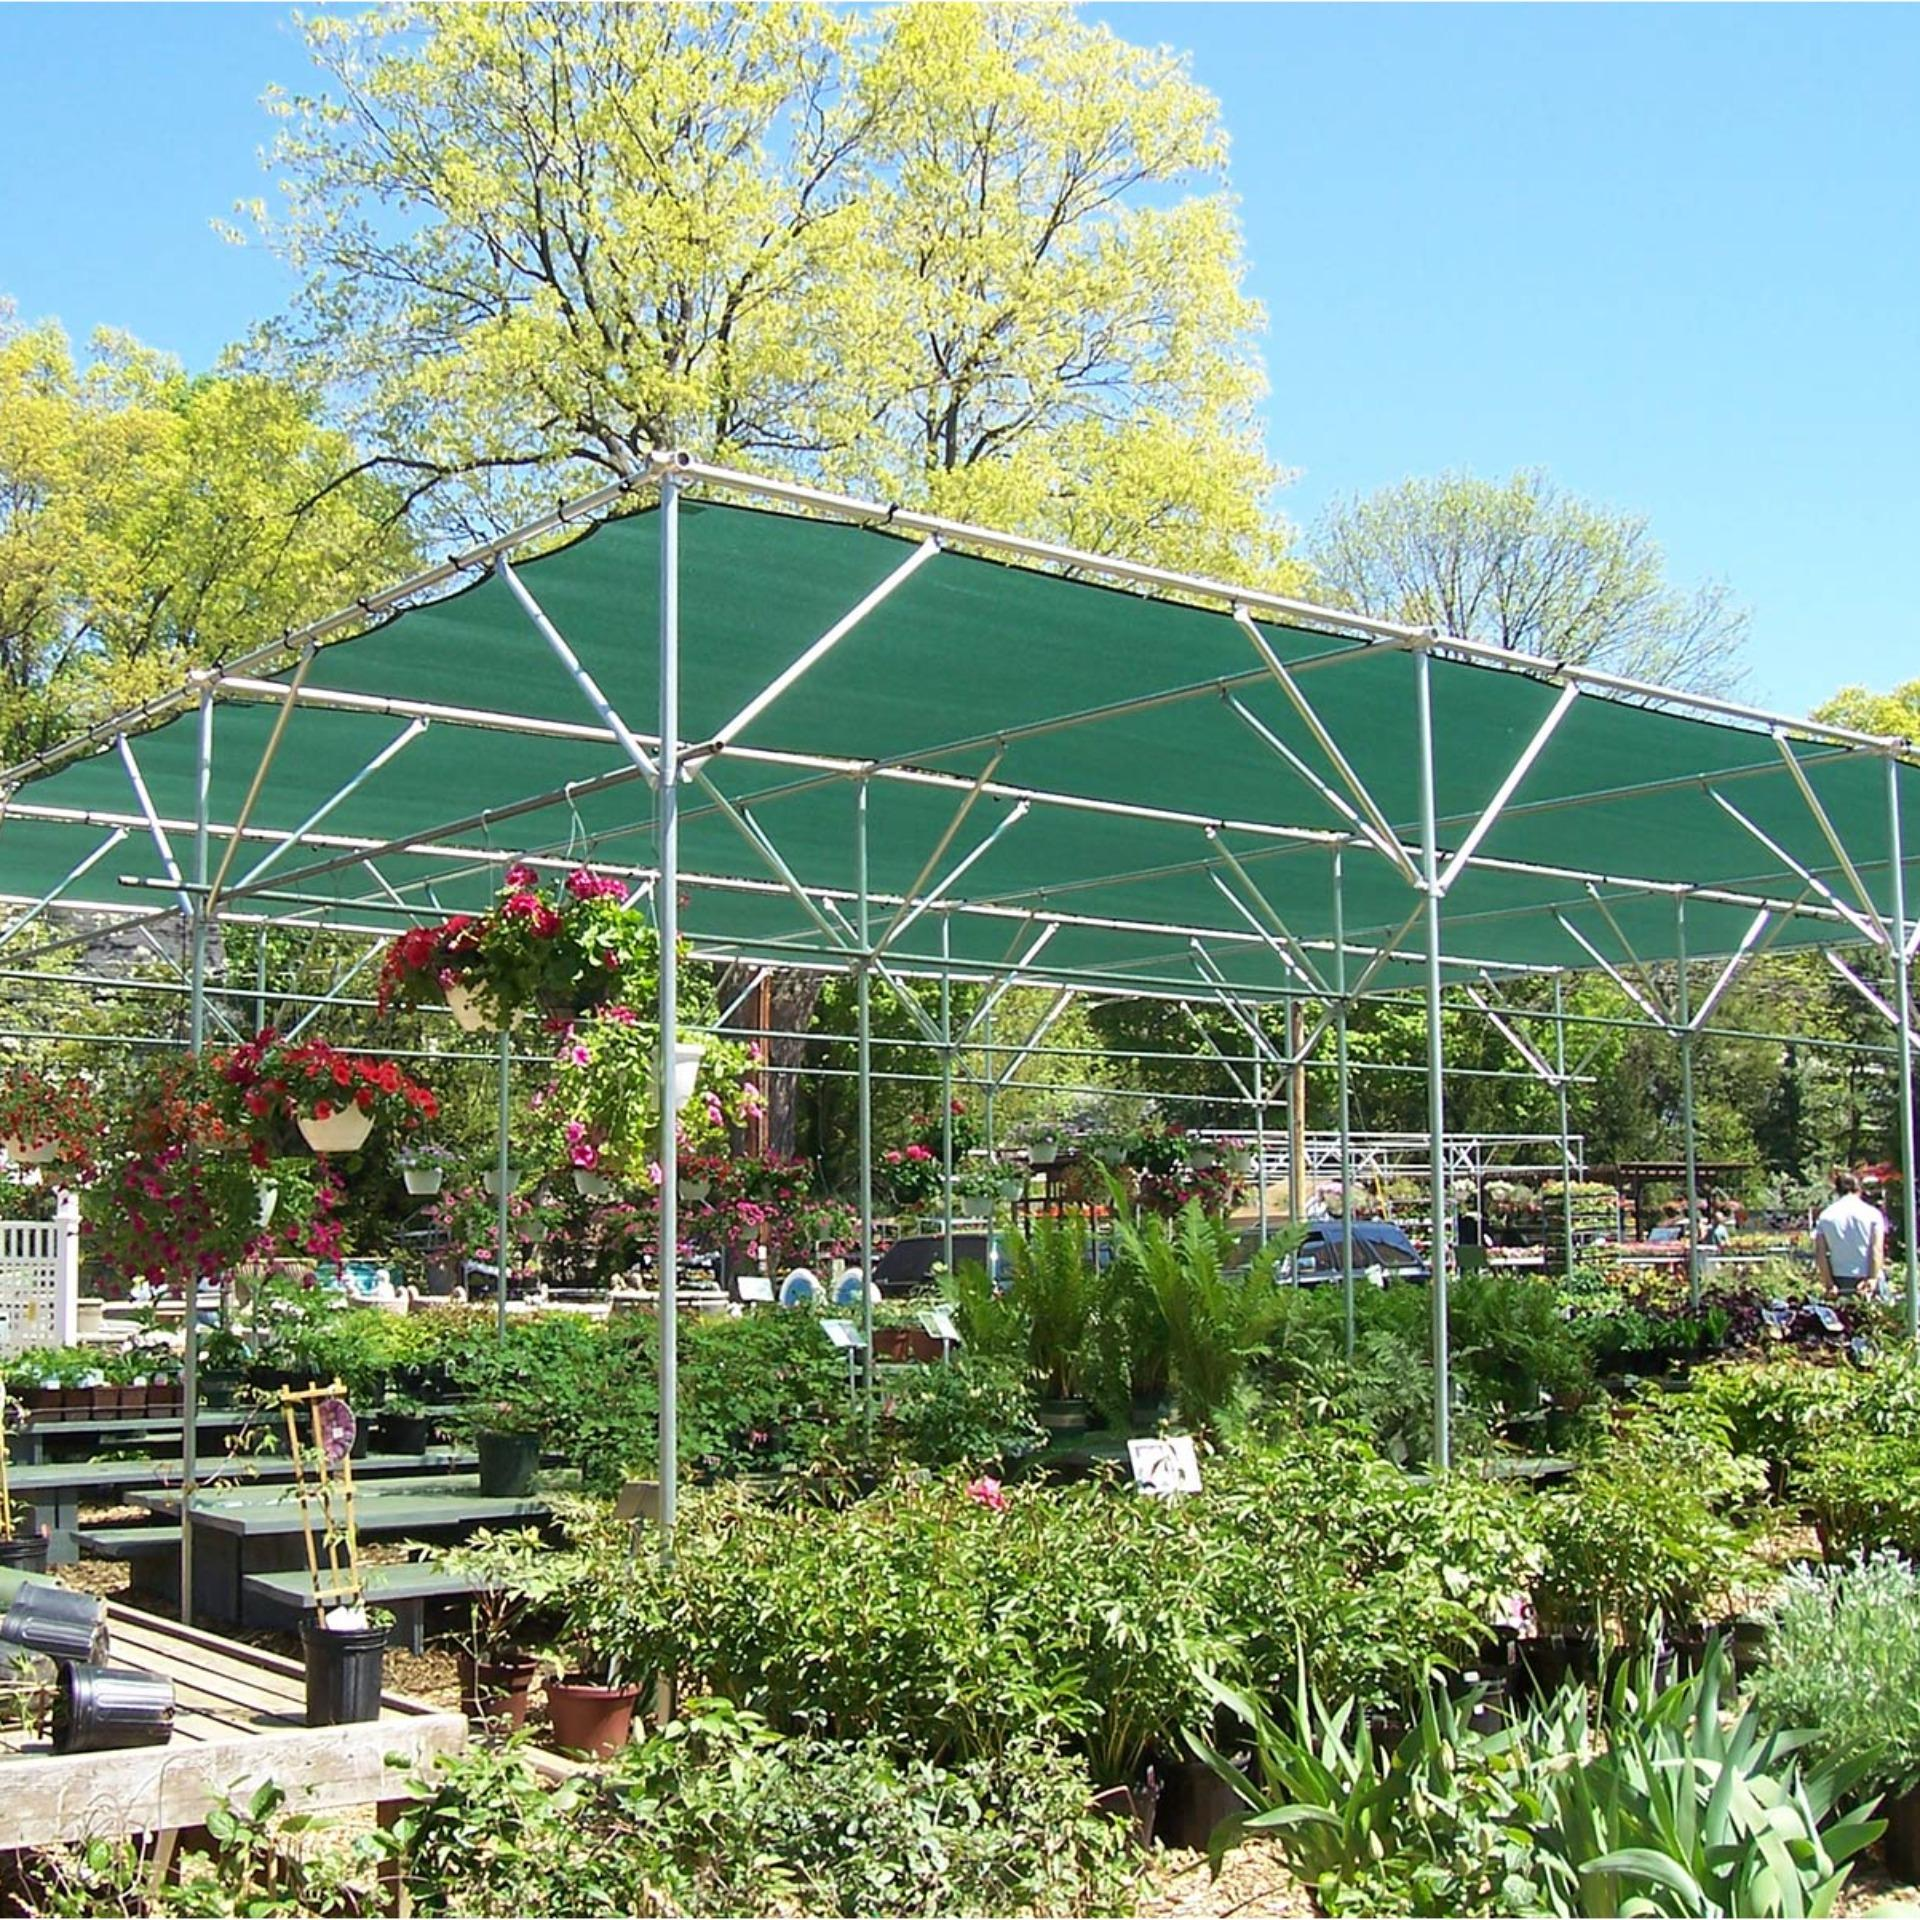 Sun Shade Sail 70% UV Block Outdoor Garden Plant Cover Awning Canopy Mesh Net Shade 4x1.8m - intl